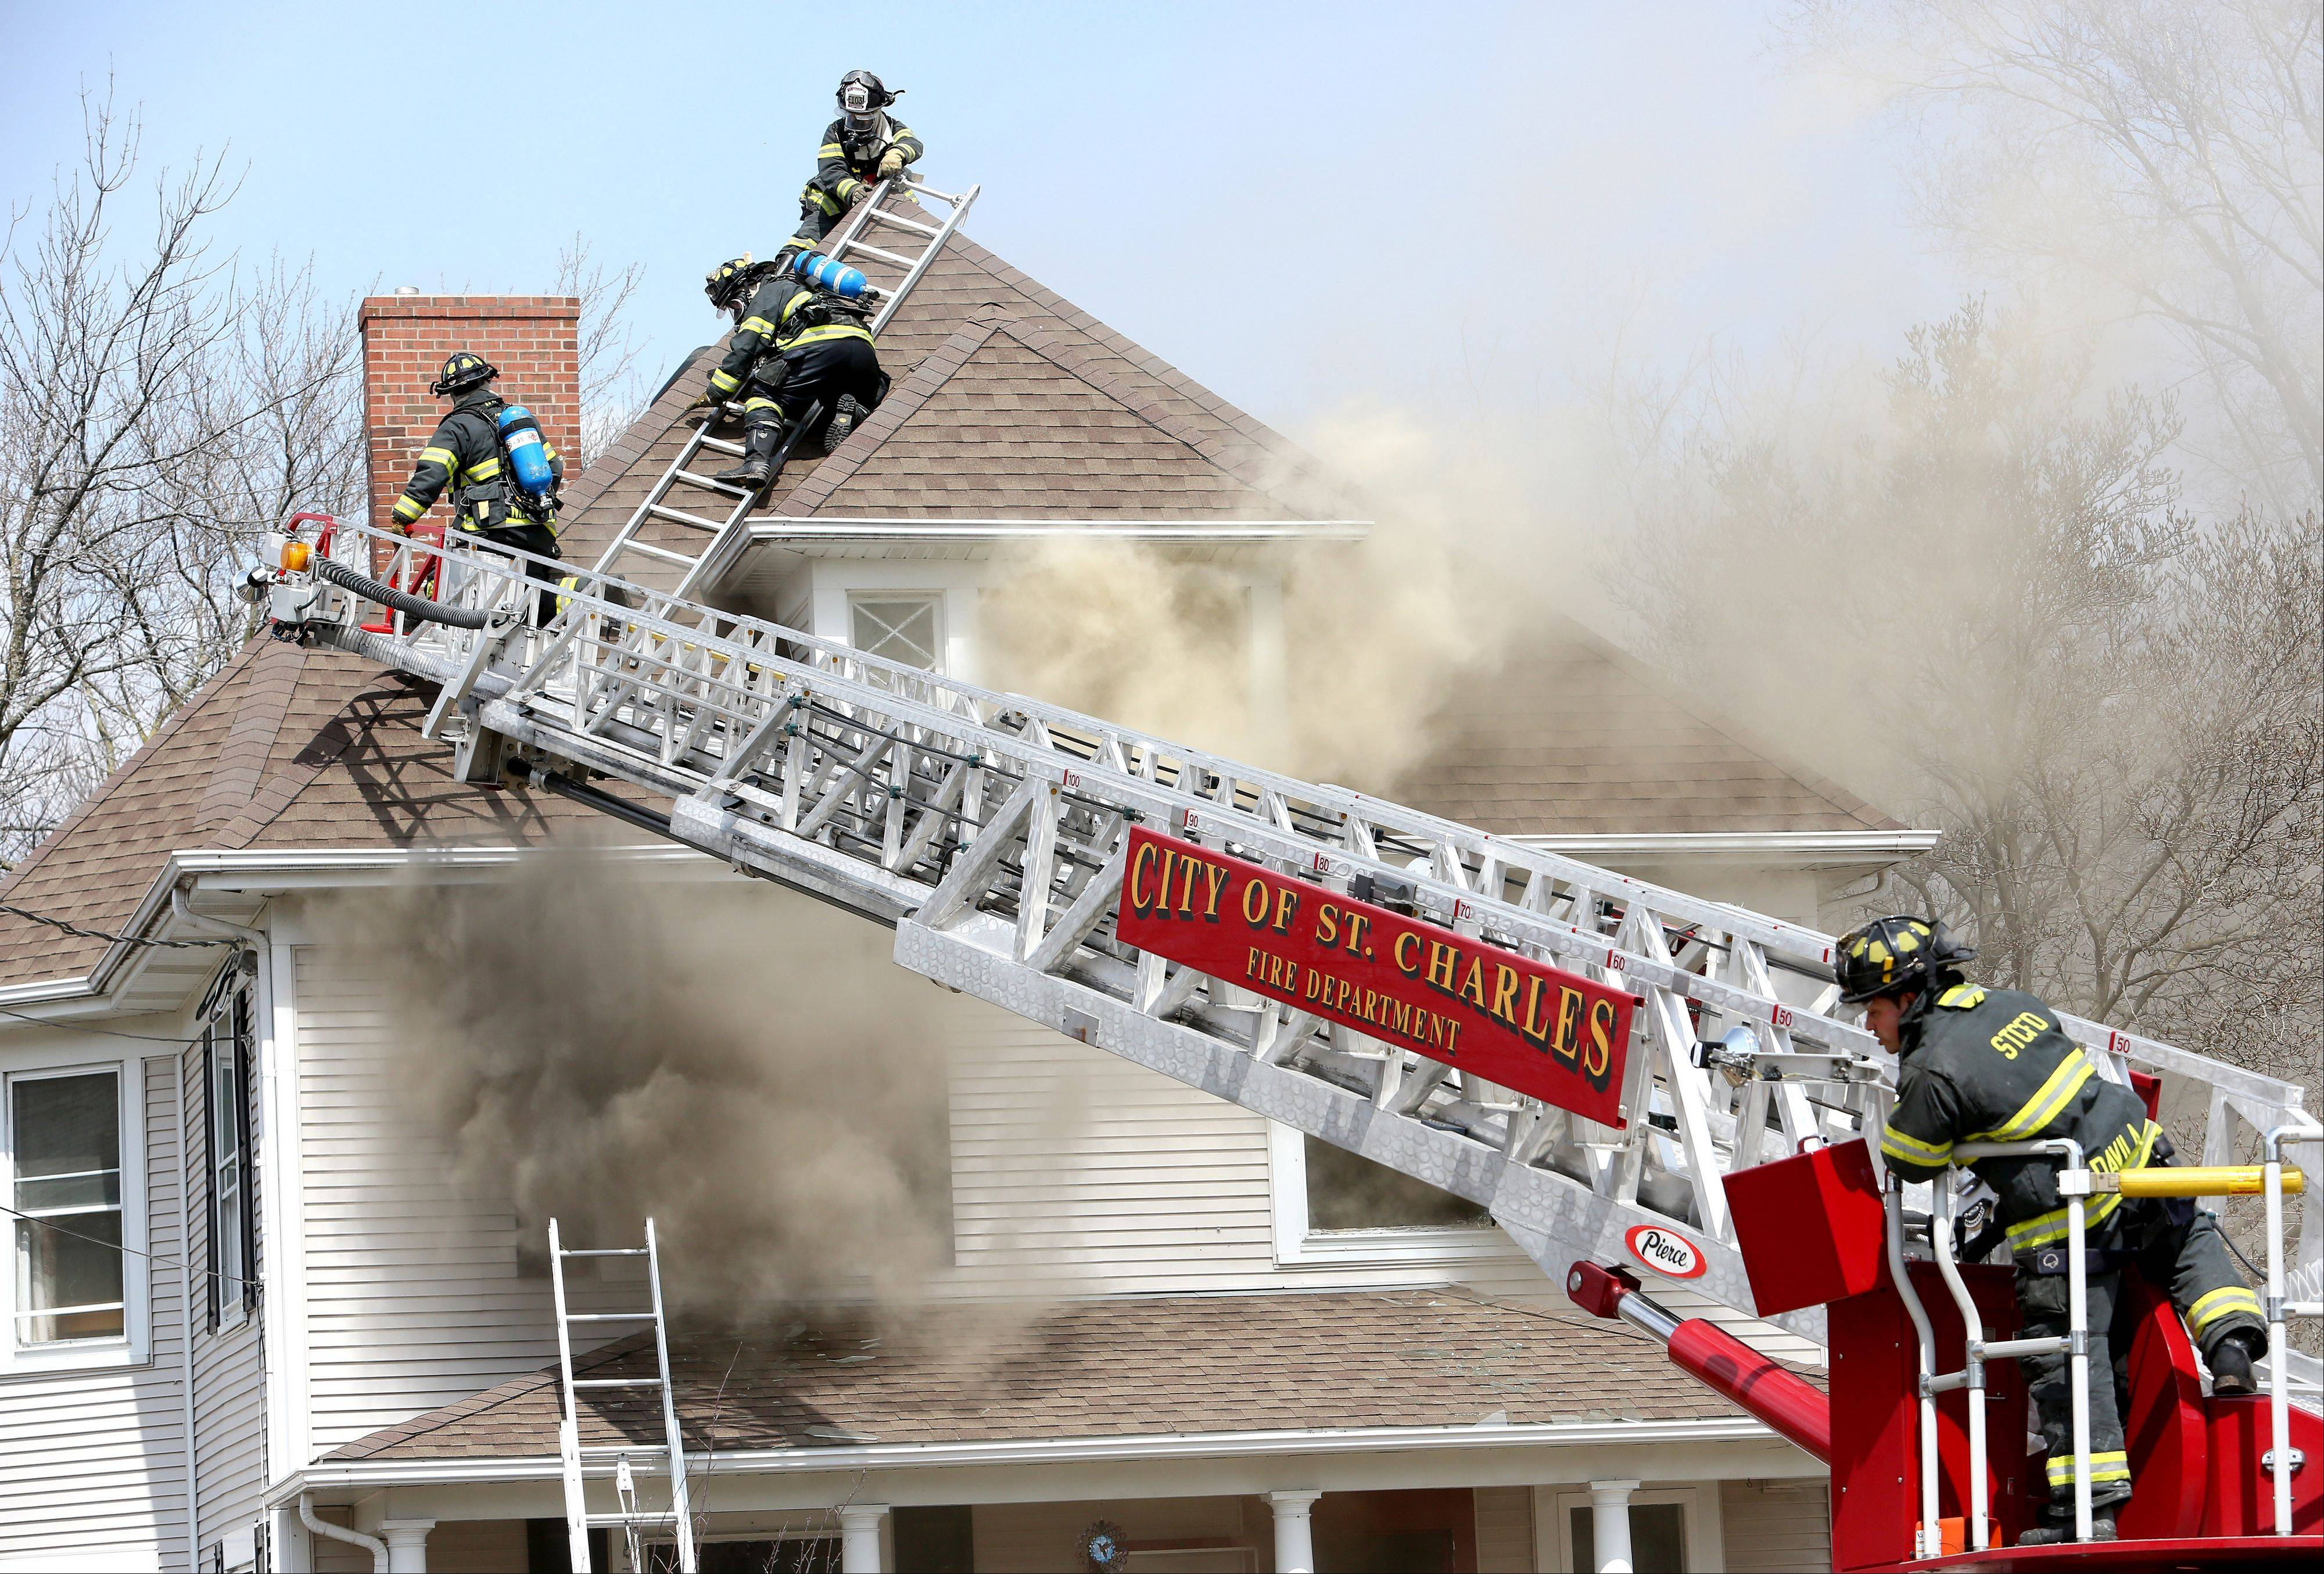 Firefighters battled a house fire on the 600 block of State Avenue in St. Charles on Sunday. Early reports indicate that all occupants of the house got out safely.